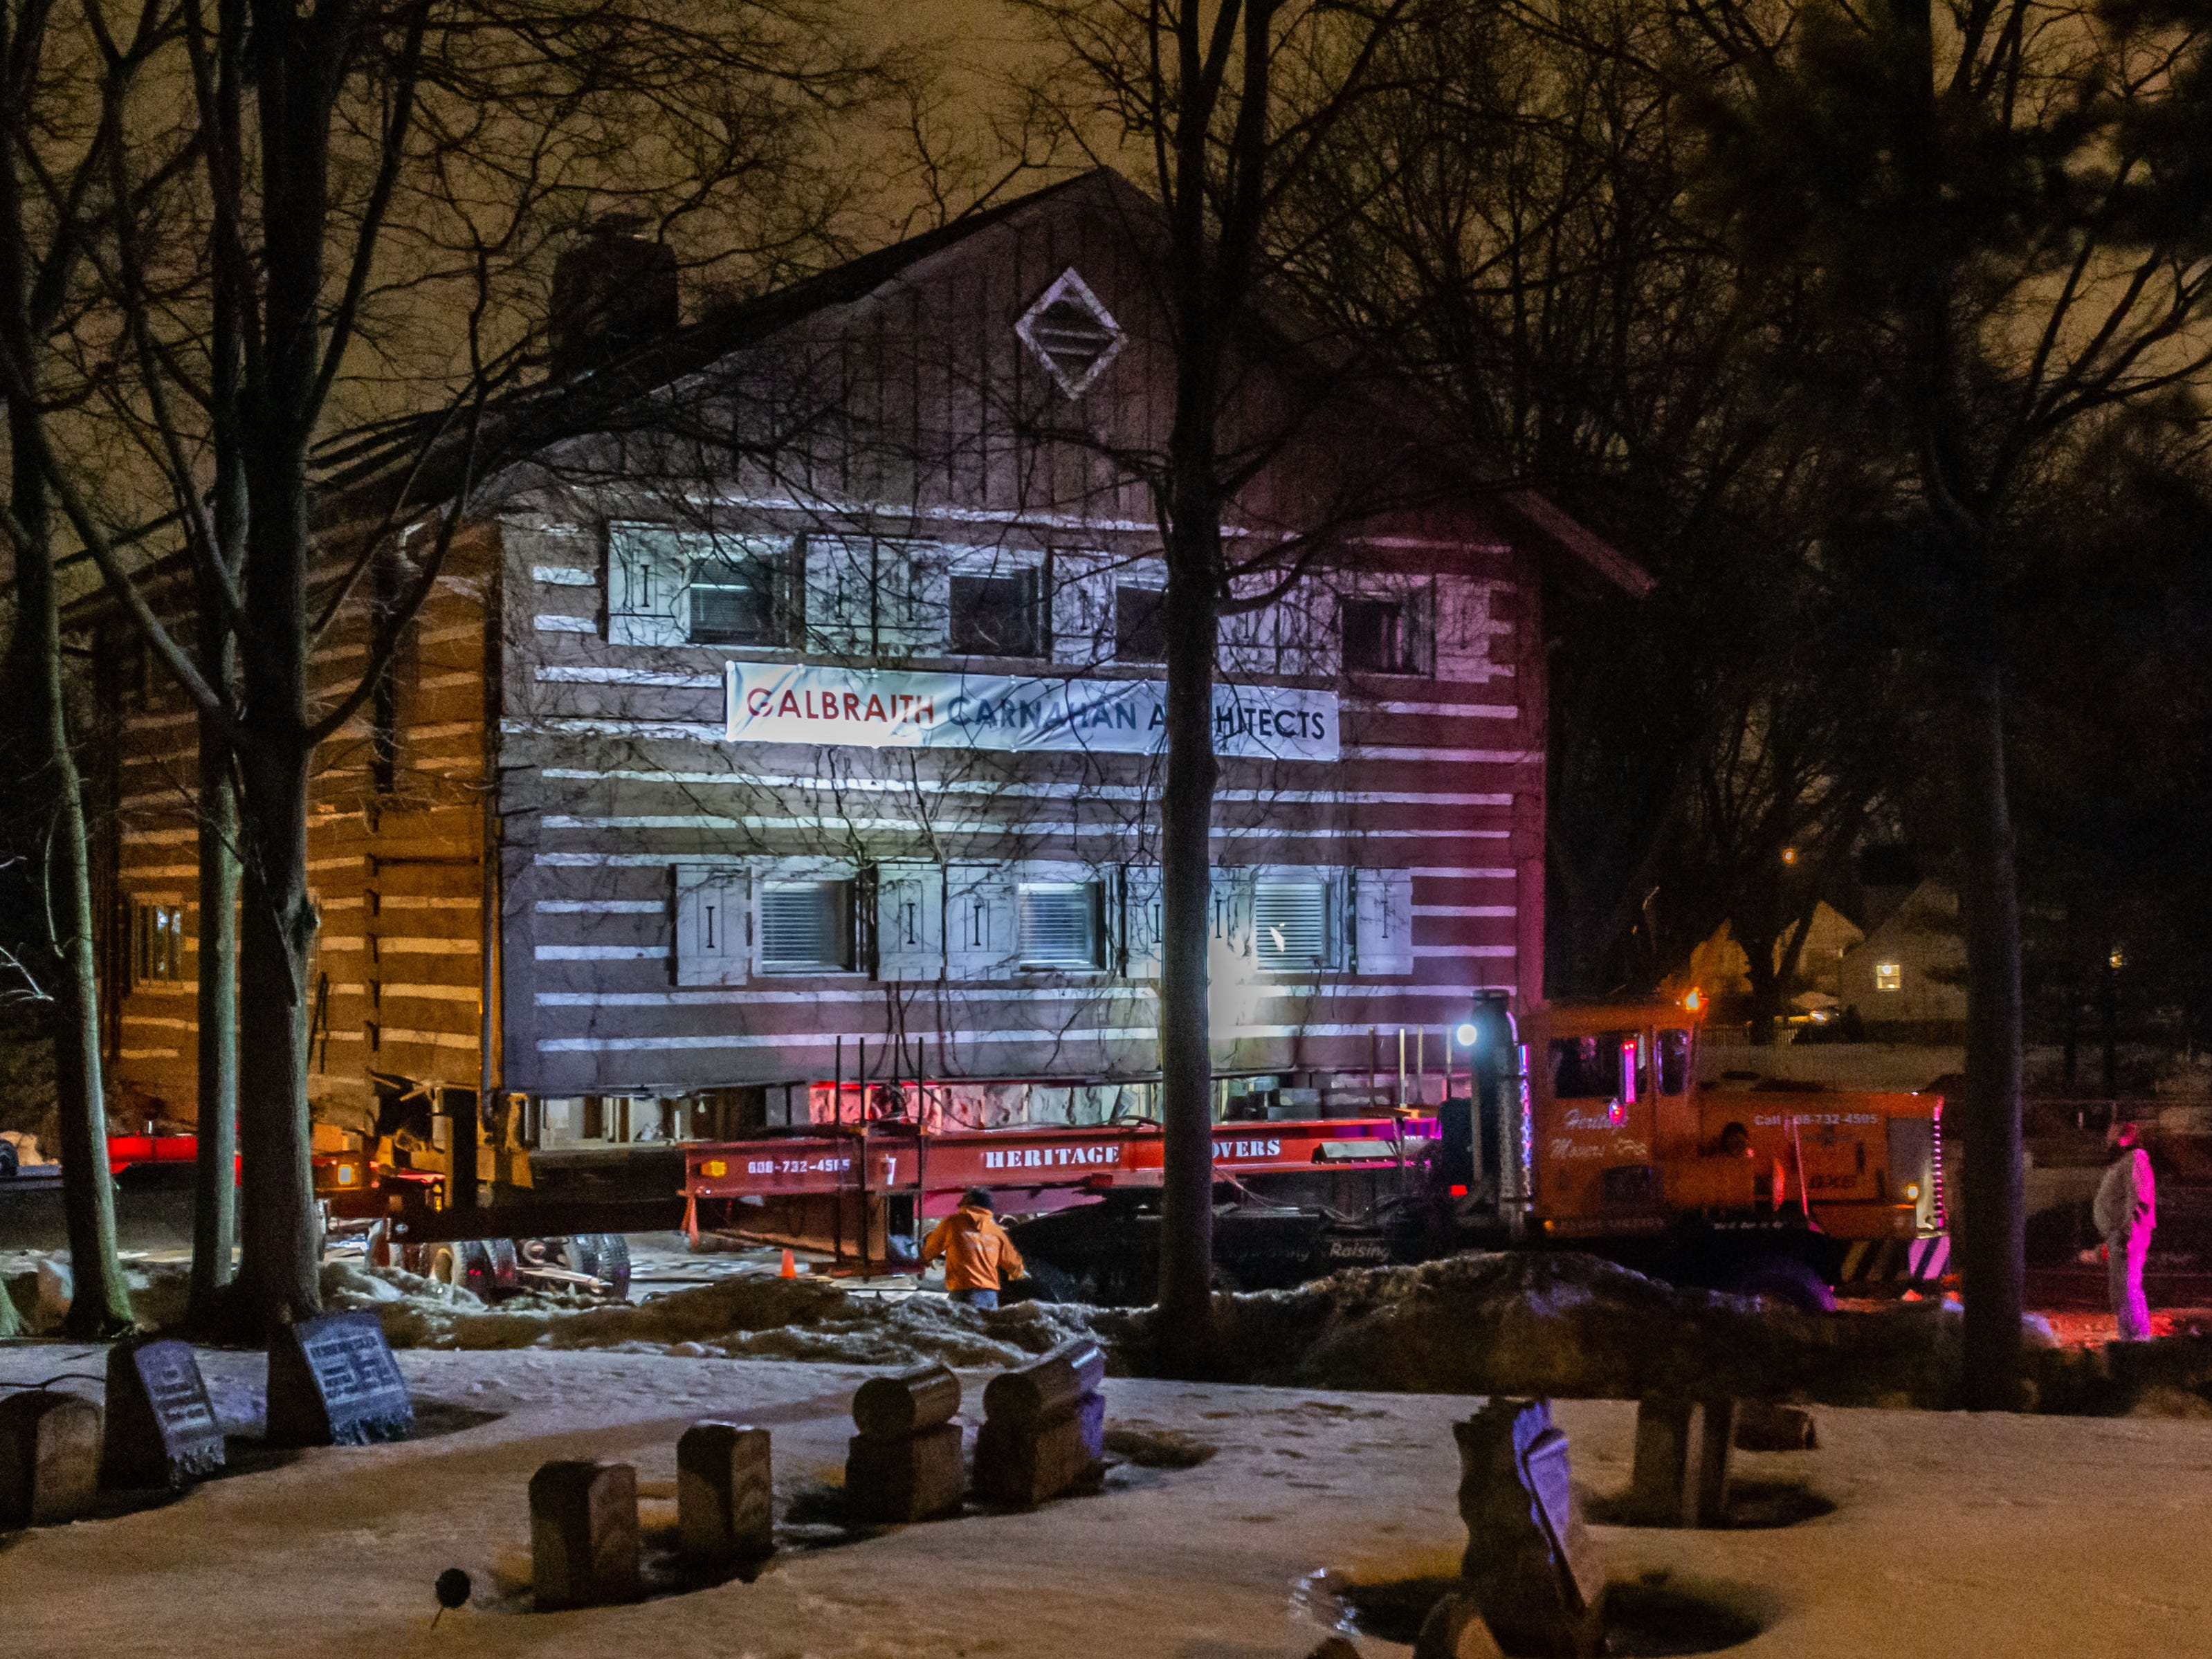 """A crew from Heritage Movers prepare to move the """"Tosa Log Cabin"""" from 2515 N. Wauwatosa Ave. to 6404 W. North Ave. on Wednesday evening, March 13, 2019. The cabin is being moved to make way for a three-story apartment complex called the Gallatin Apartments."""